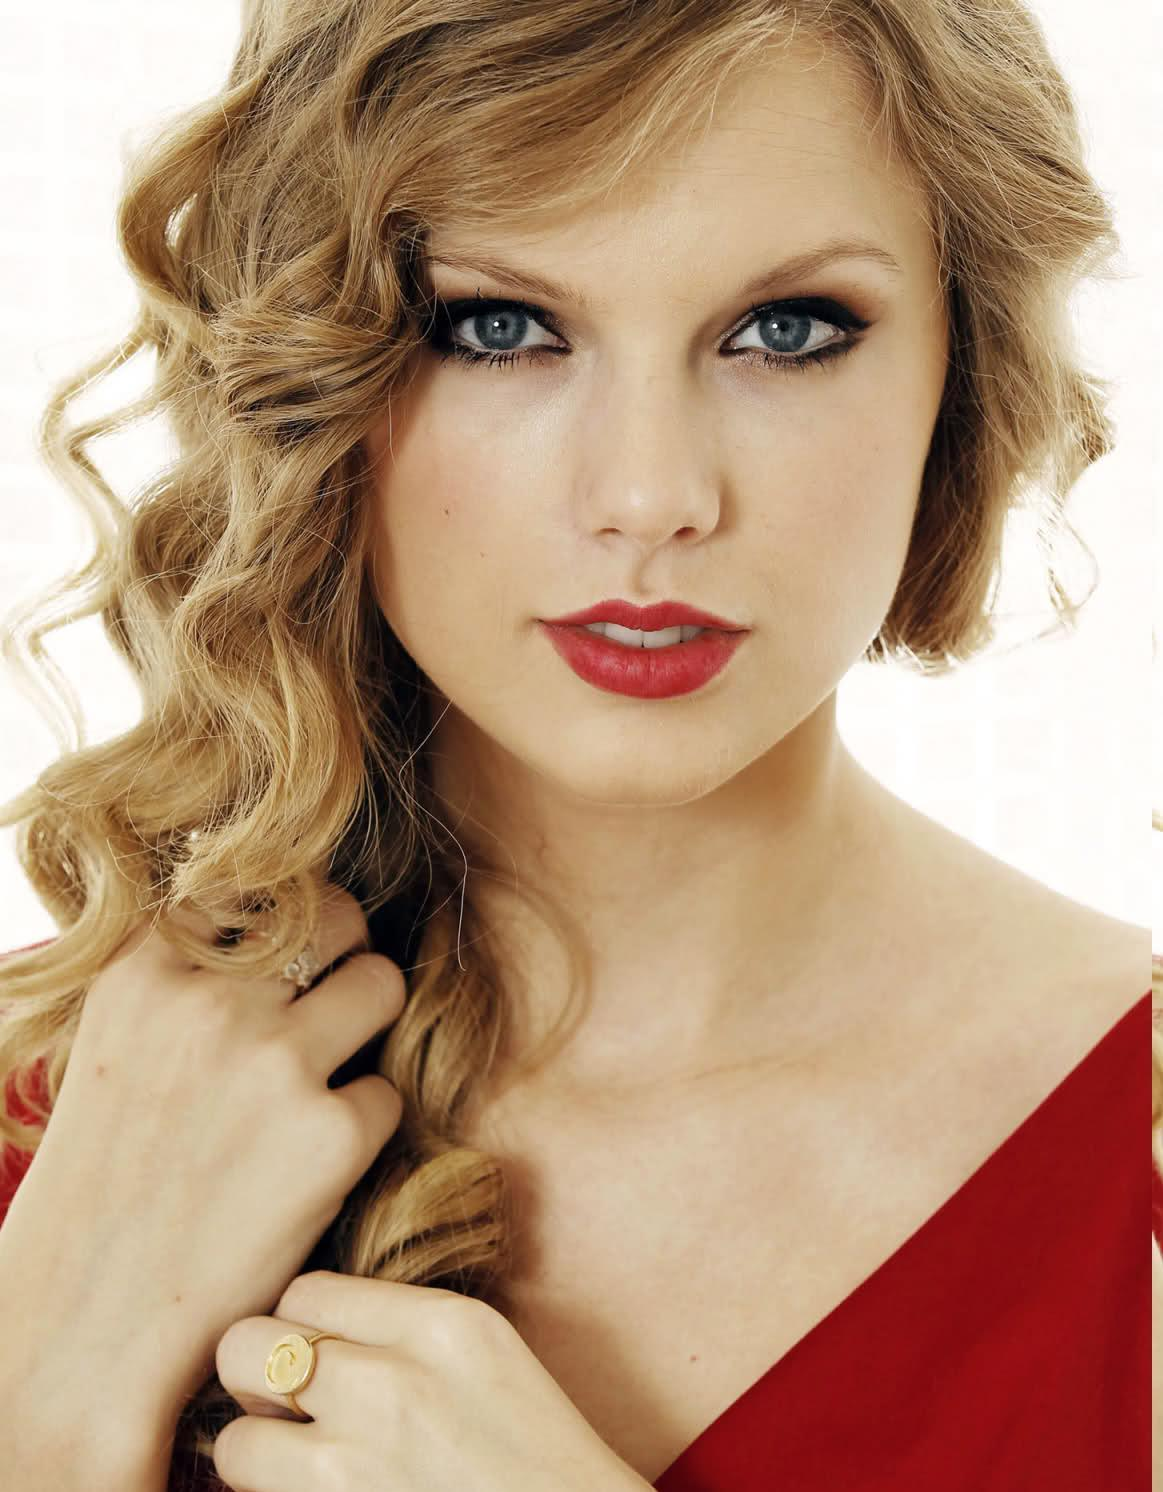 taylor swift picture taylor swift photosgood